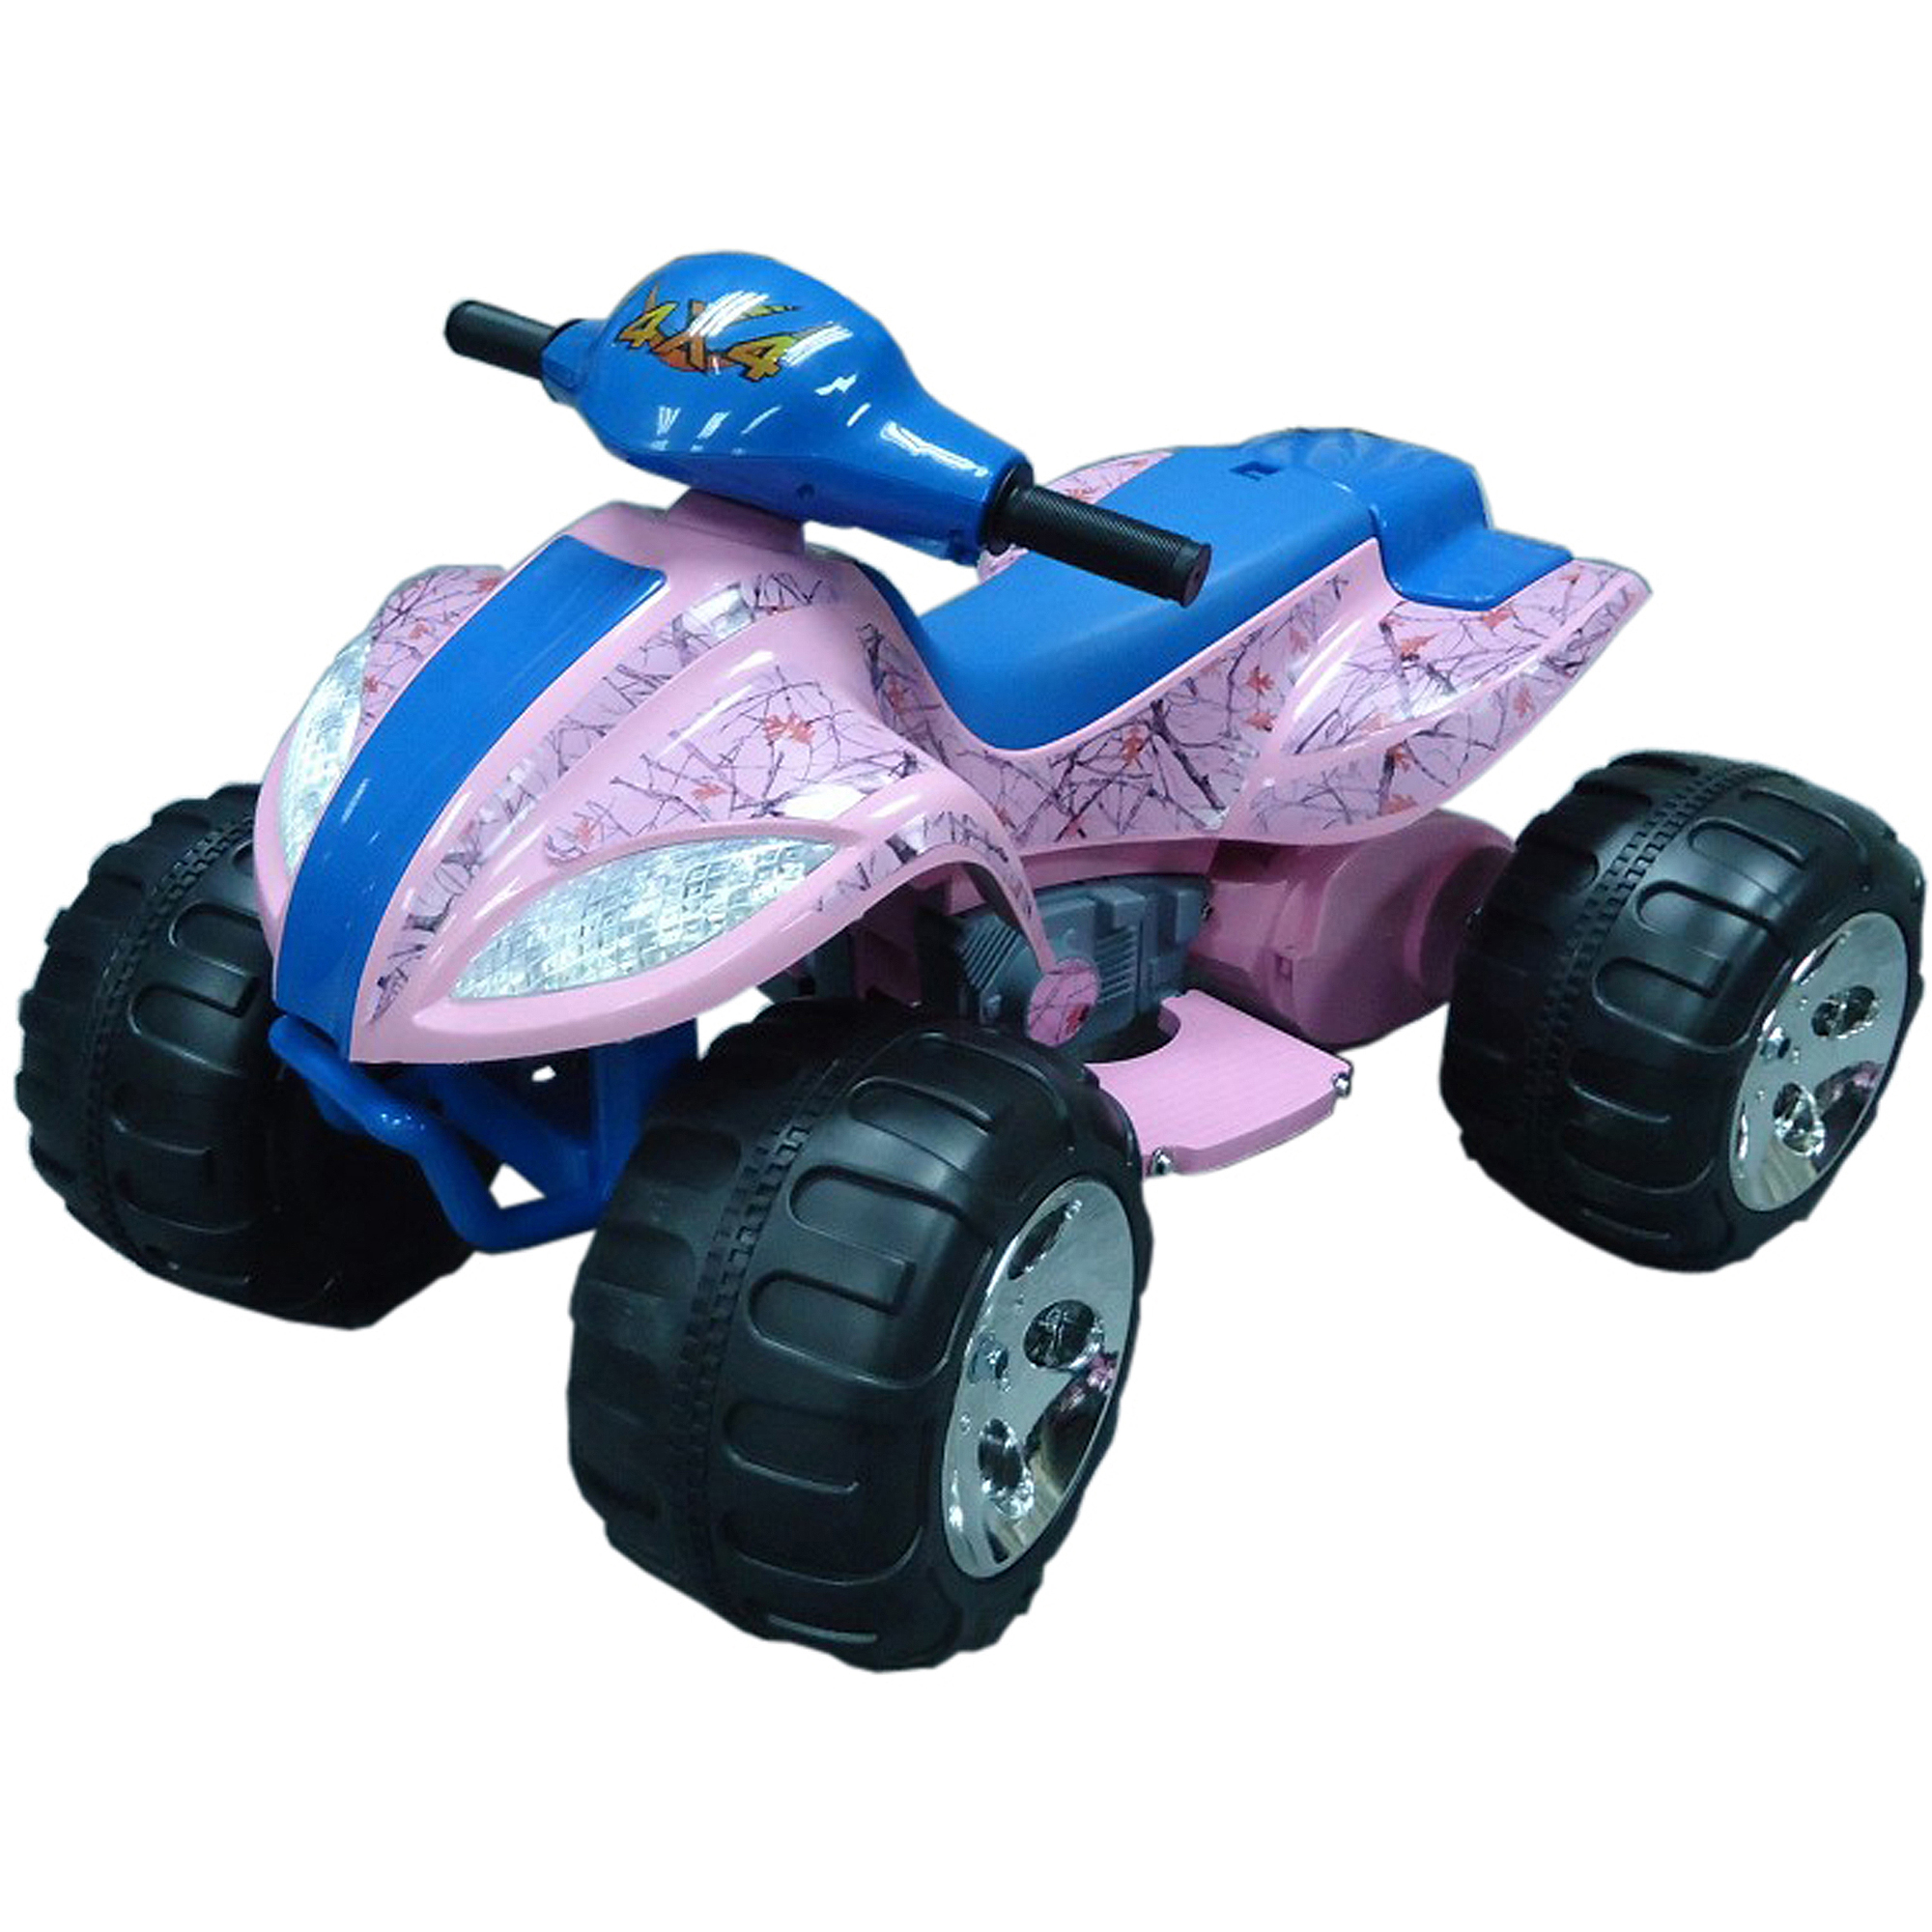 True Timber 6-Volt Battery-Operated Camo Max Quad Ride-On, Pink